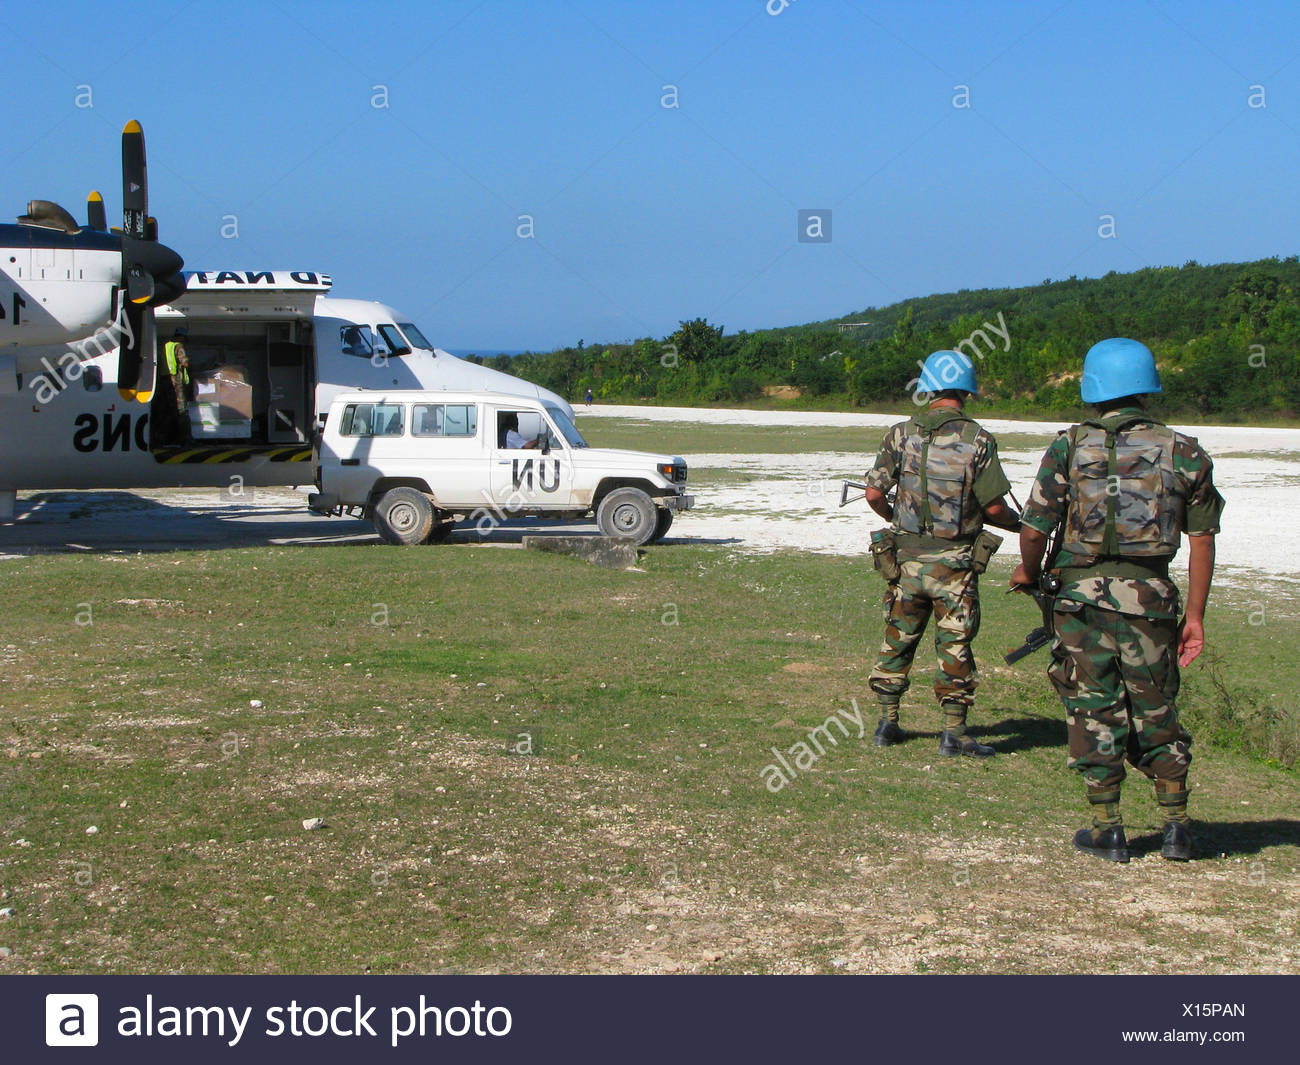 Soldiers of the 'United Nations Stabilisation Mission in Haiti' secure UN aircraft with machine gun and assault rifle next to unpaved runway, Haiti, Grande Anse, Jeremie - Stock Image